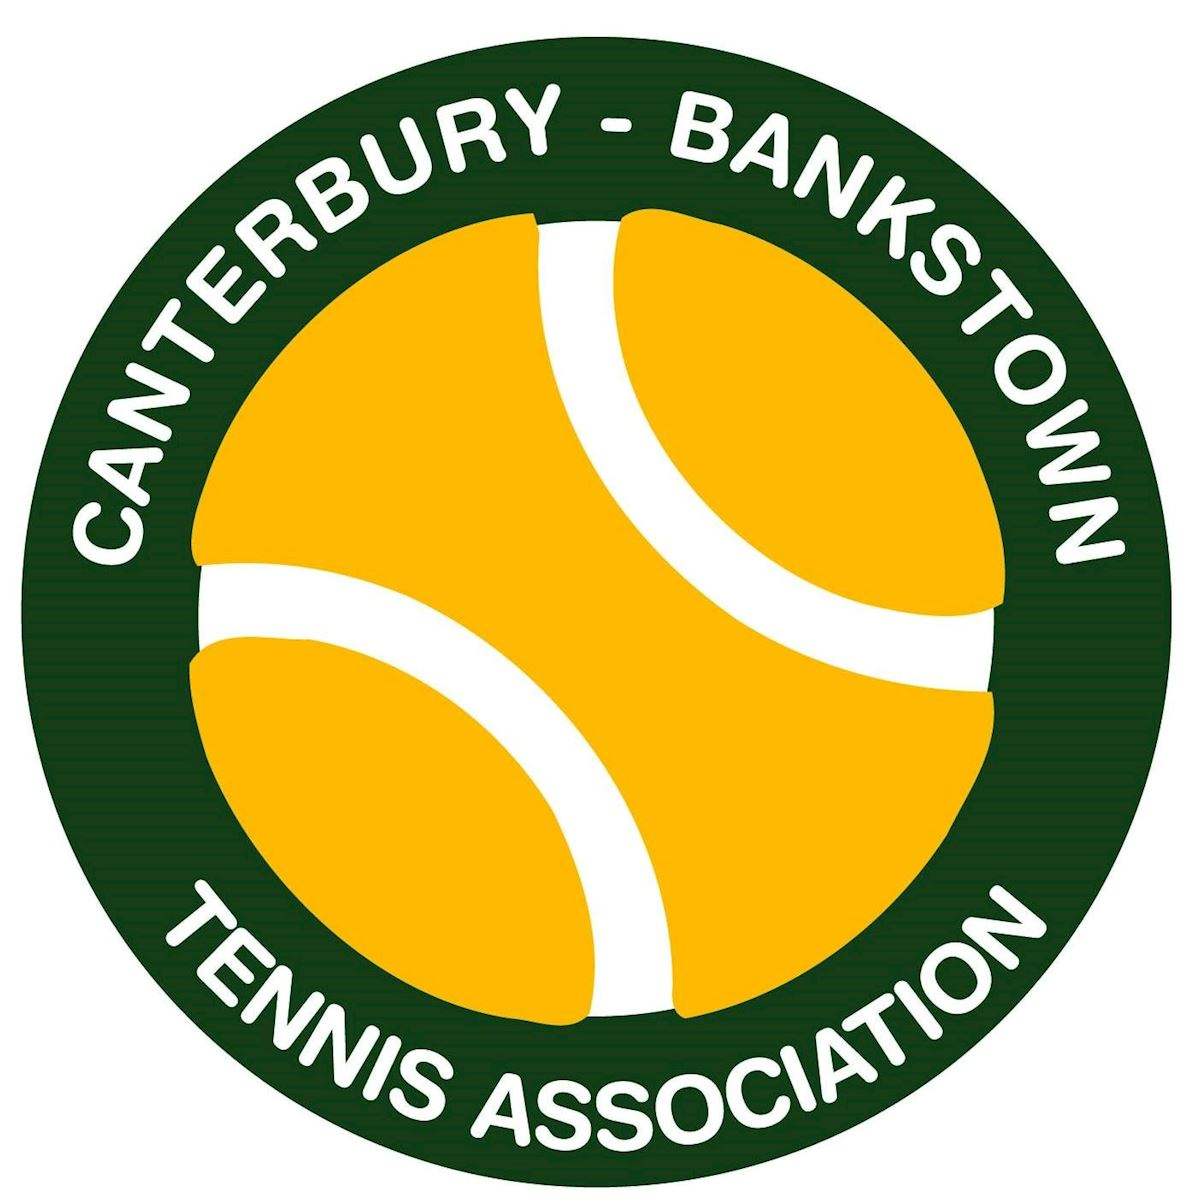 Canterbury Bankstown Tennis Association